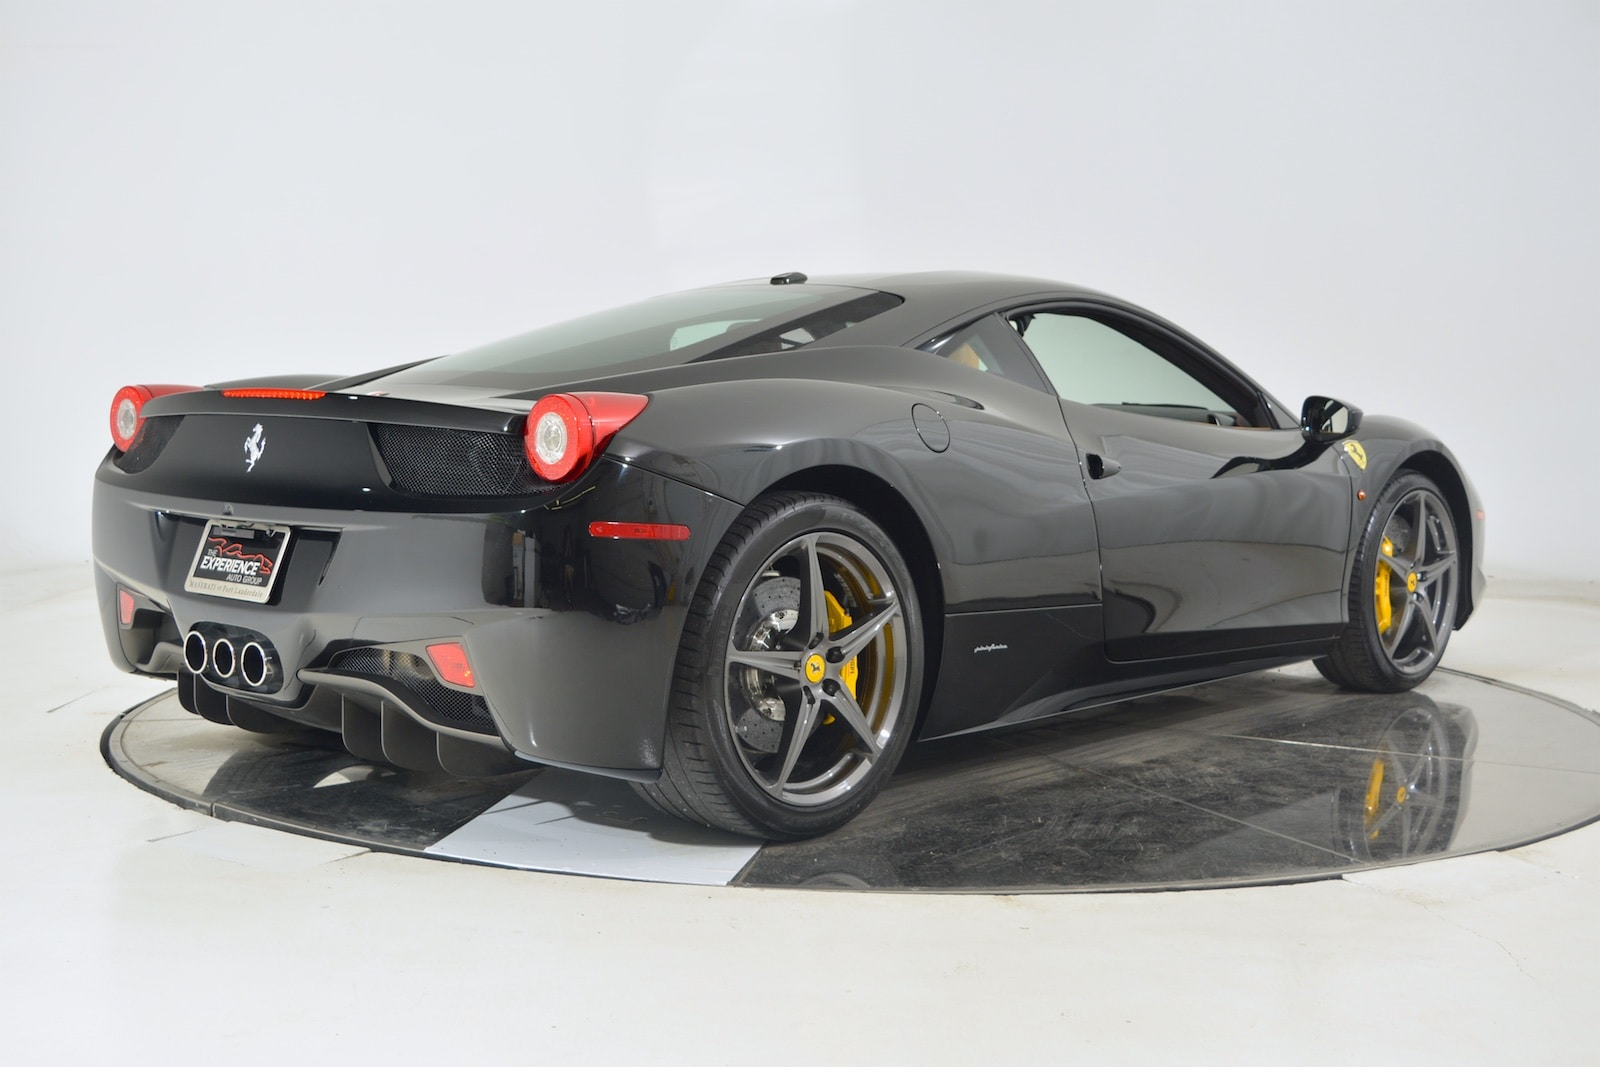 used 2010 ferrari 458 italia for sale fort lauderdale fl. Black Bedroom Furniture Sets. Home Design Ideas